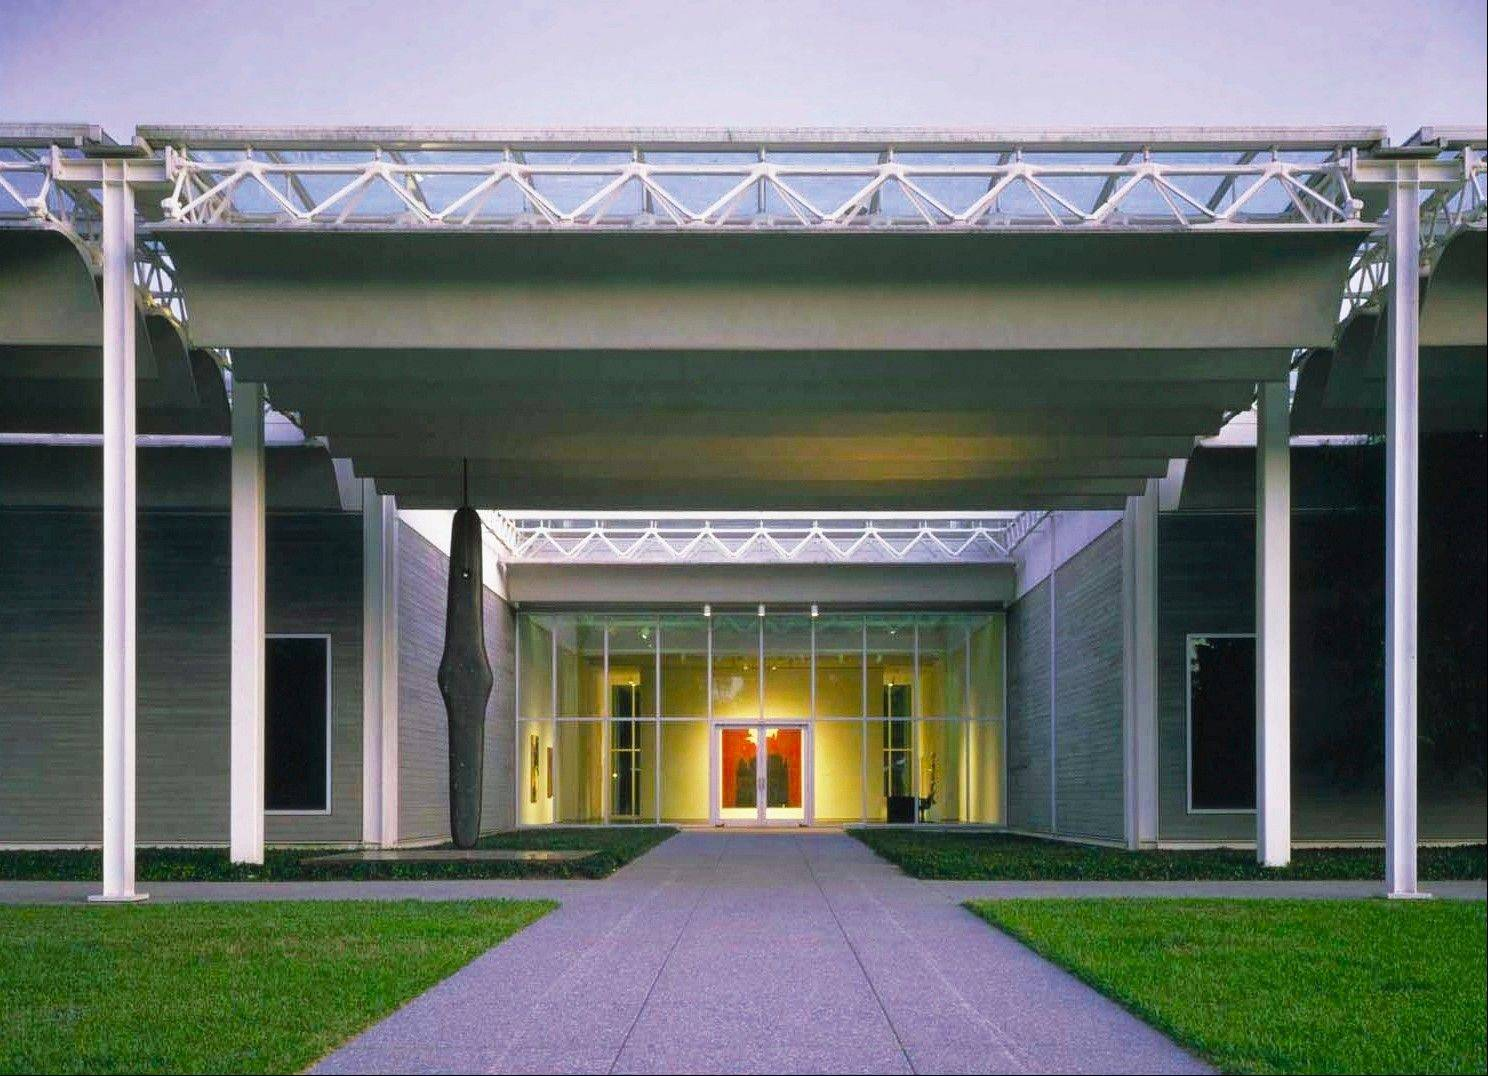 The Menil Collection holds nearly 16,000 art objects from ancient works to modern masterpieces.